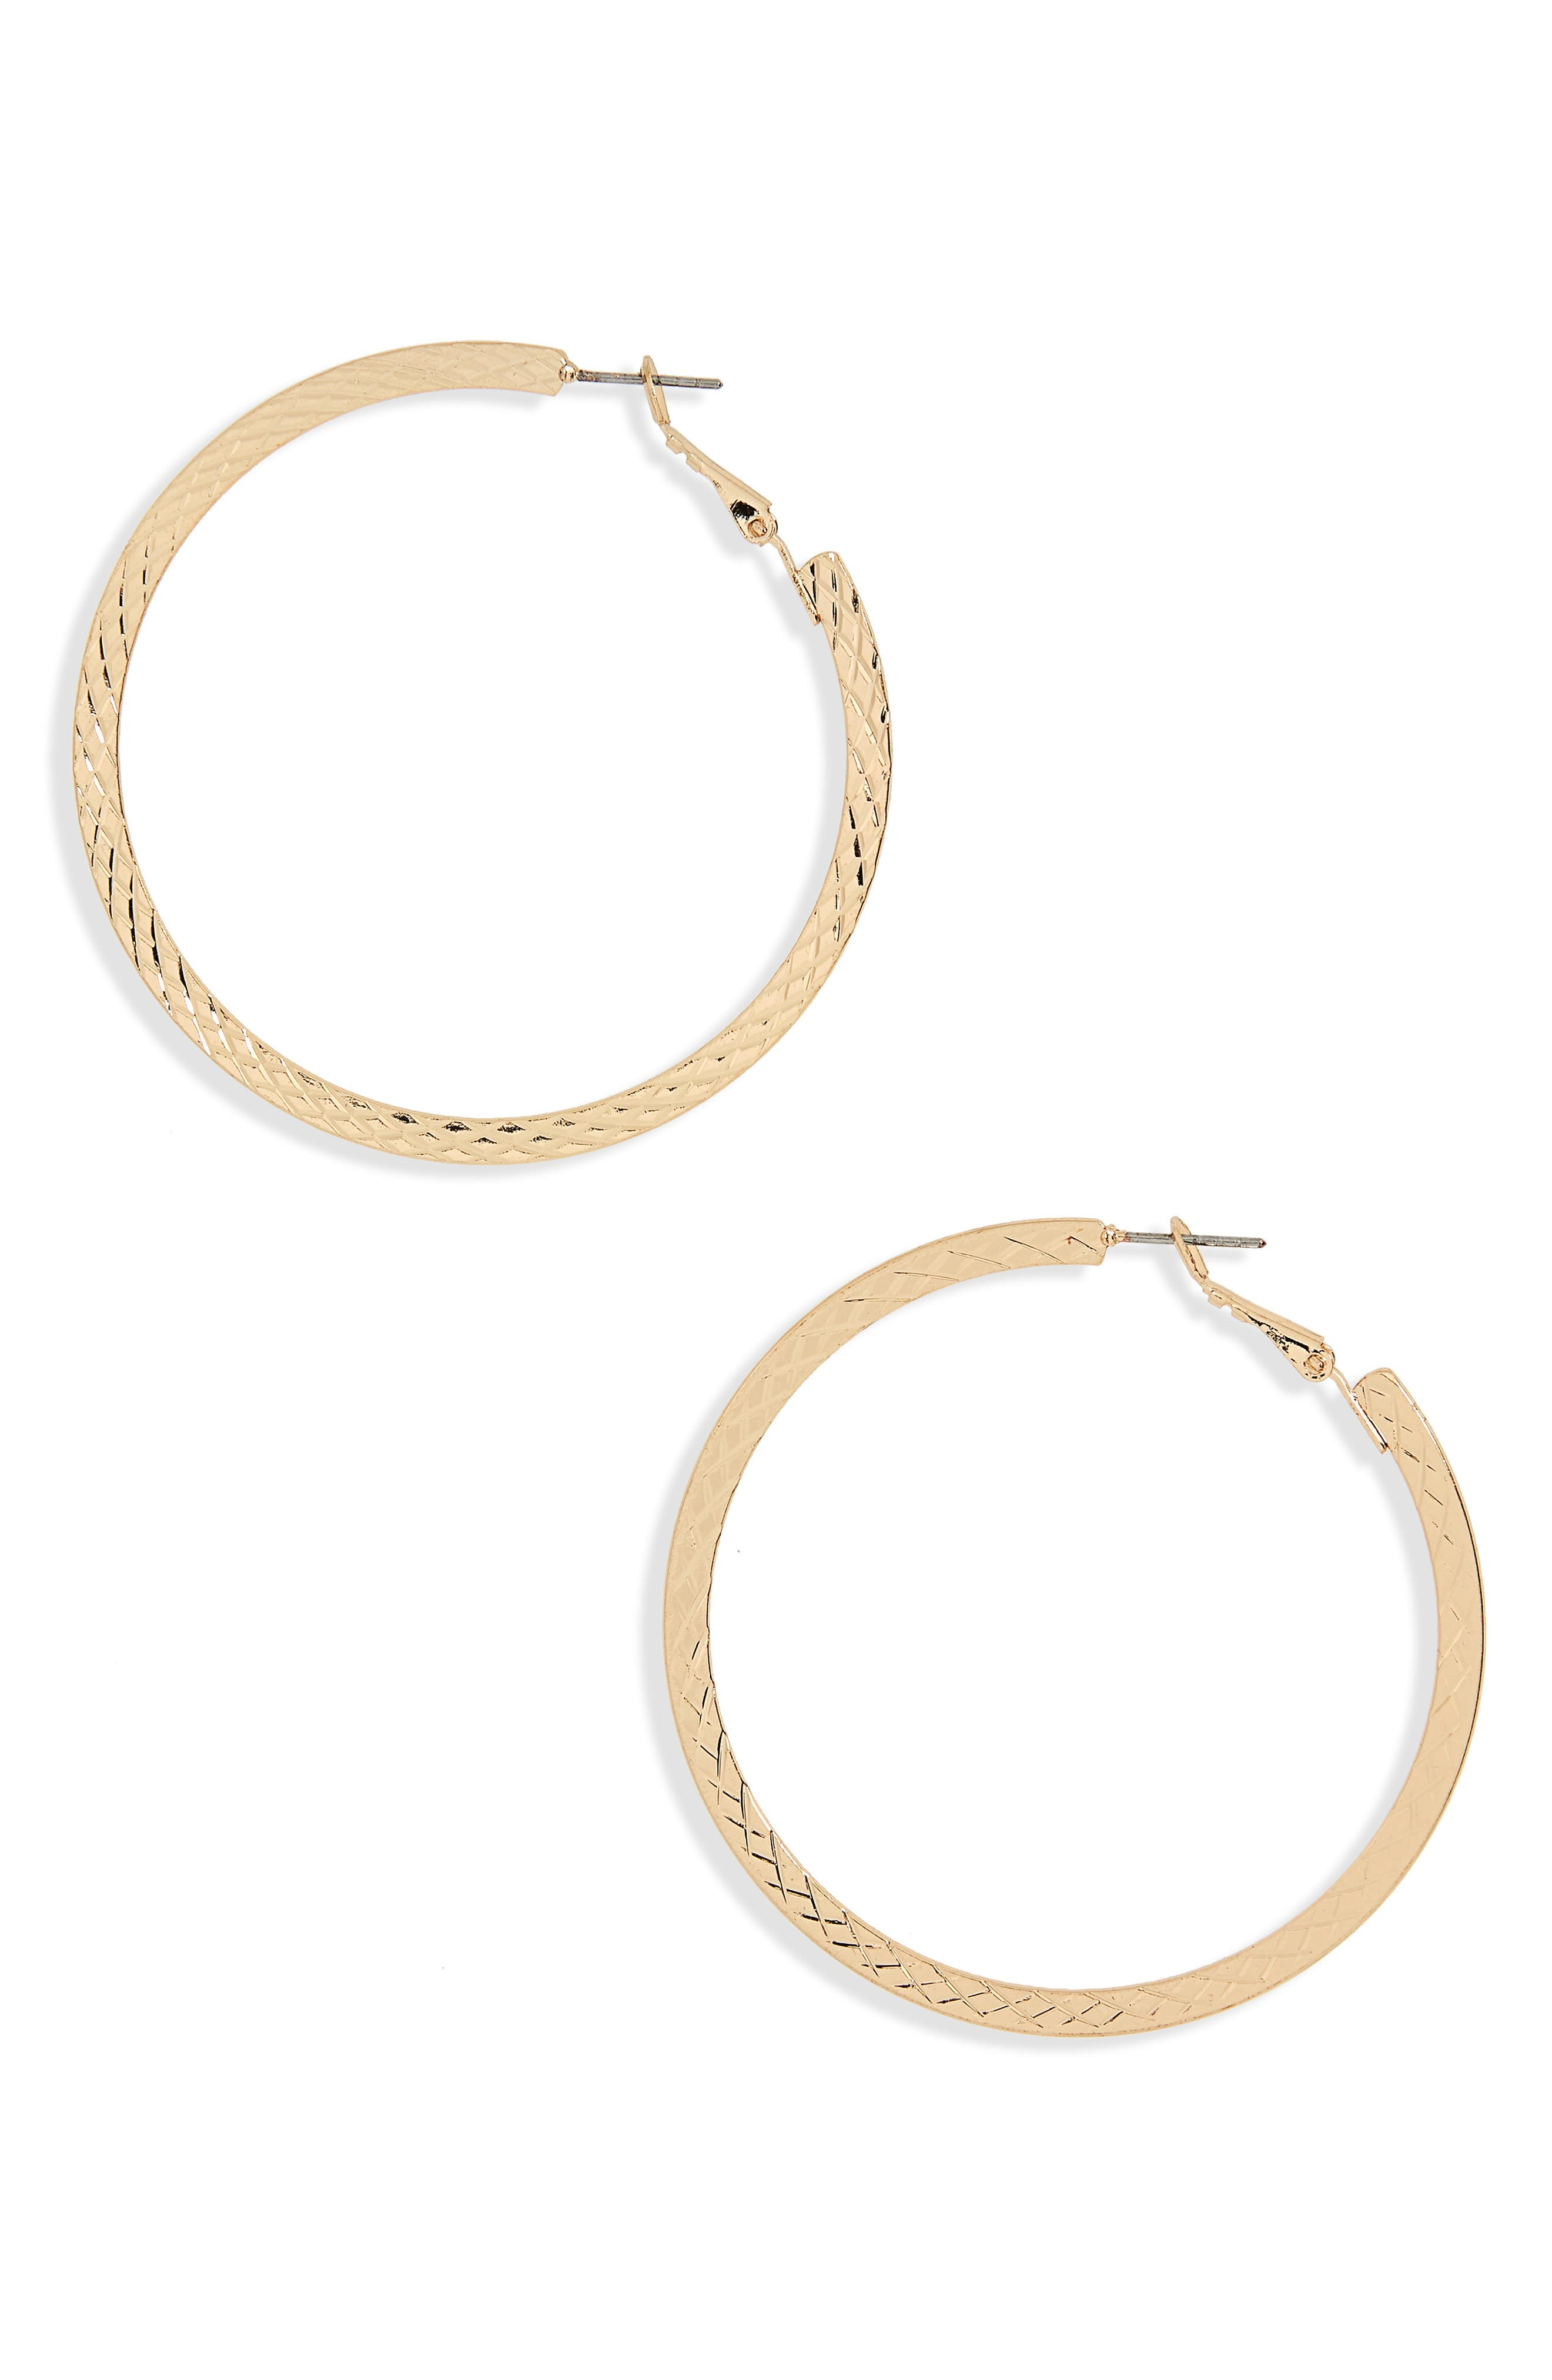 Etched Flat Hoop Earrings,                         Main,                         color, Gold